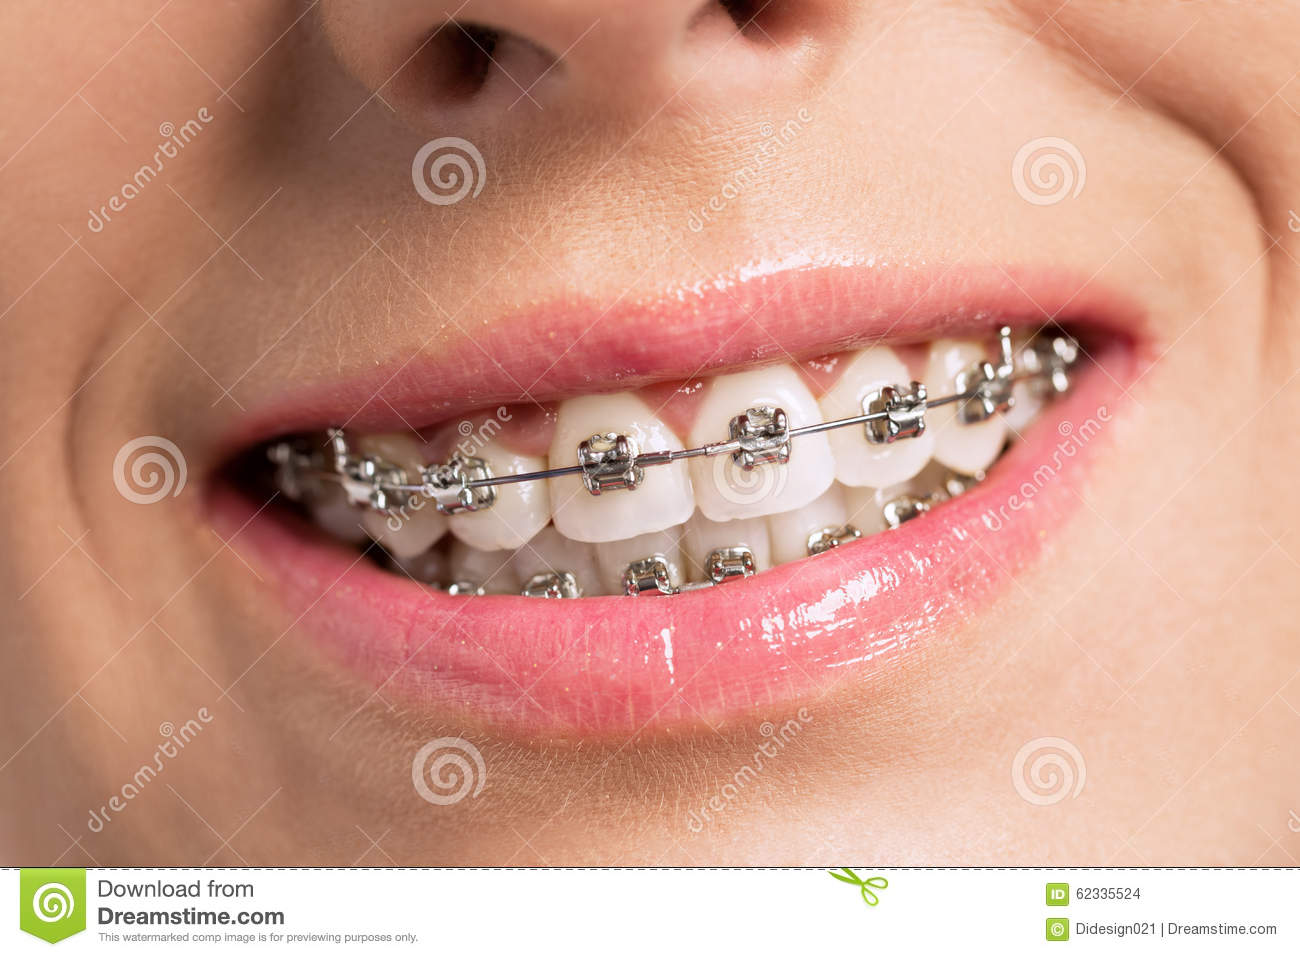 Perfect Teeth After Braces Tumblr | www.imgkid.com - The ...